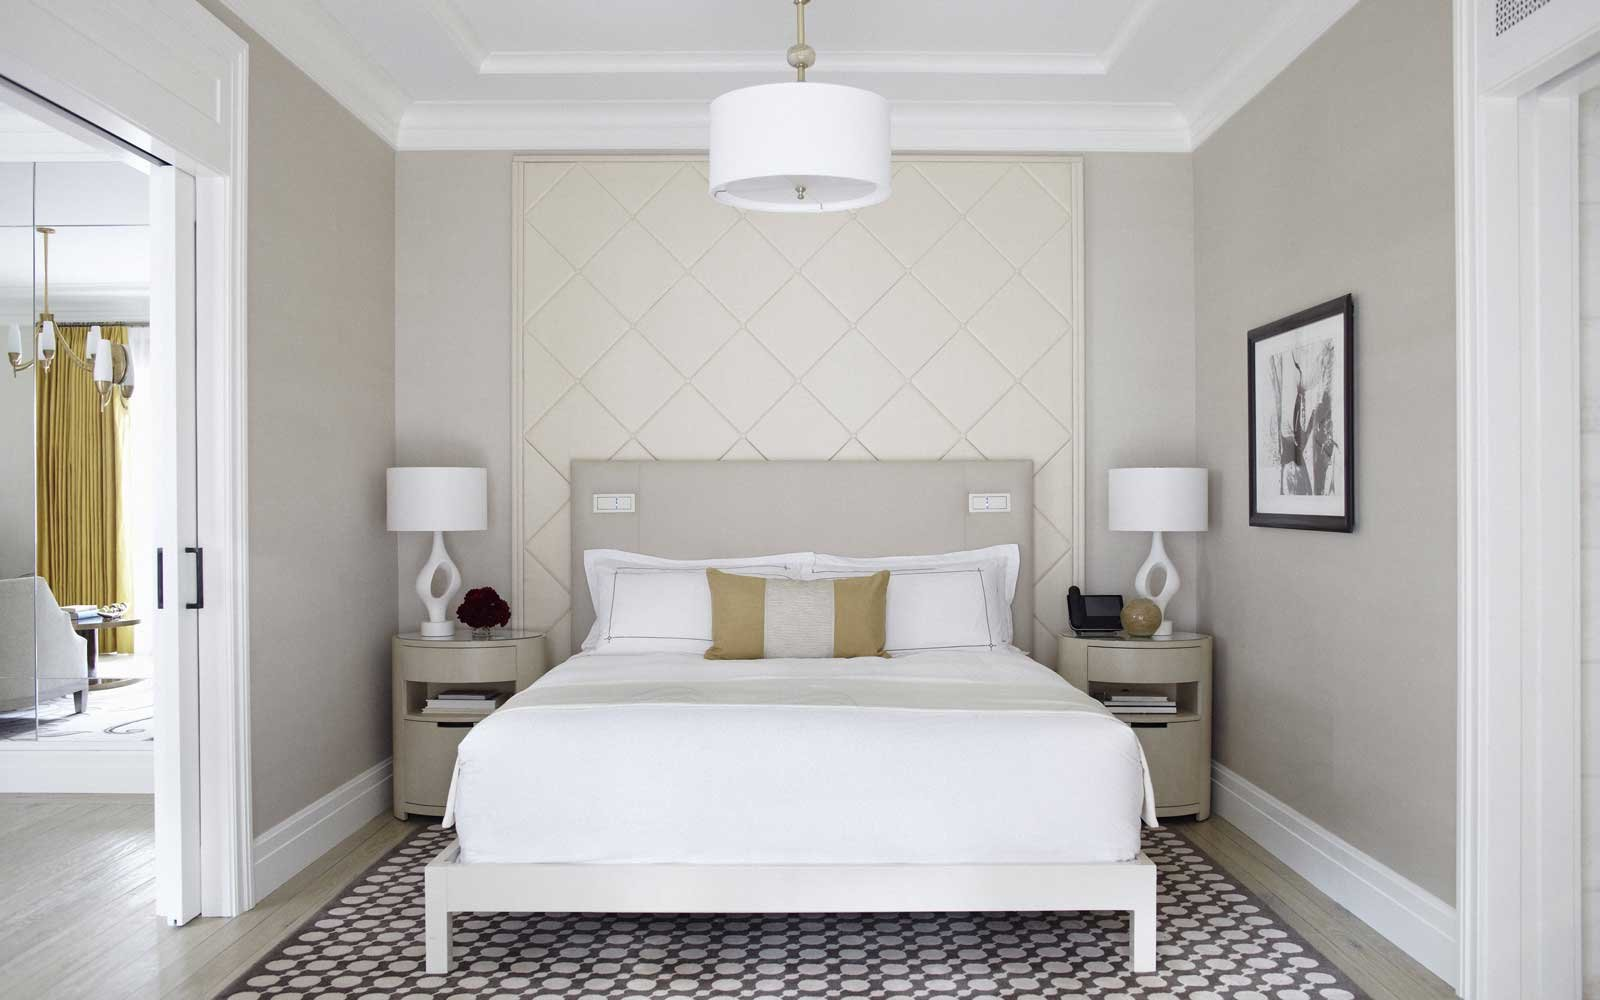 grace-kelly-bedroom-dorchester-collection-LUXSHEETS1017.jpg